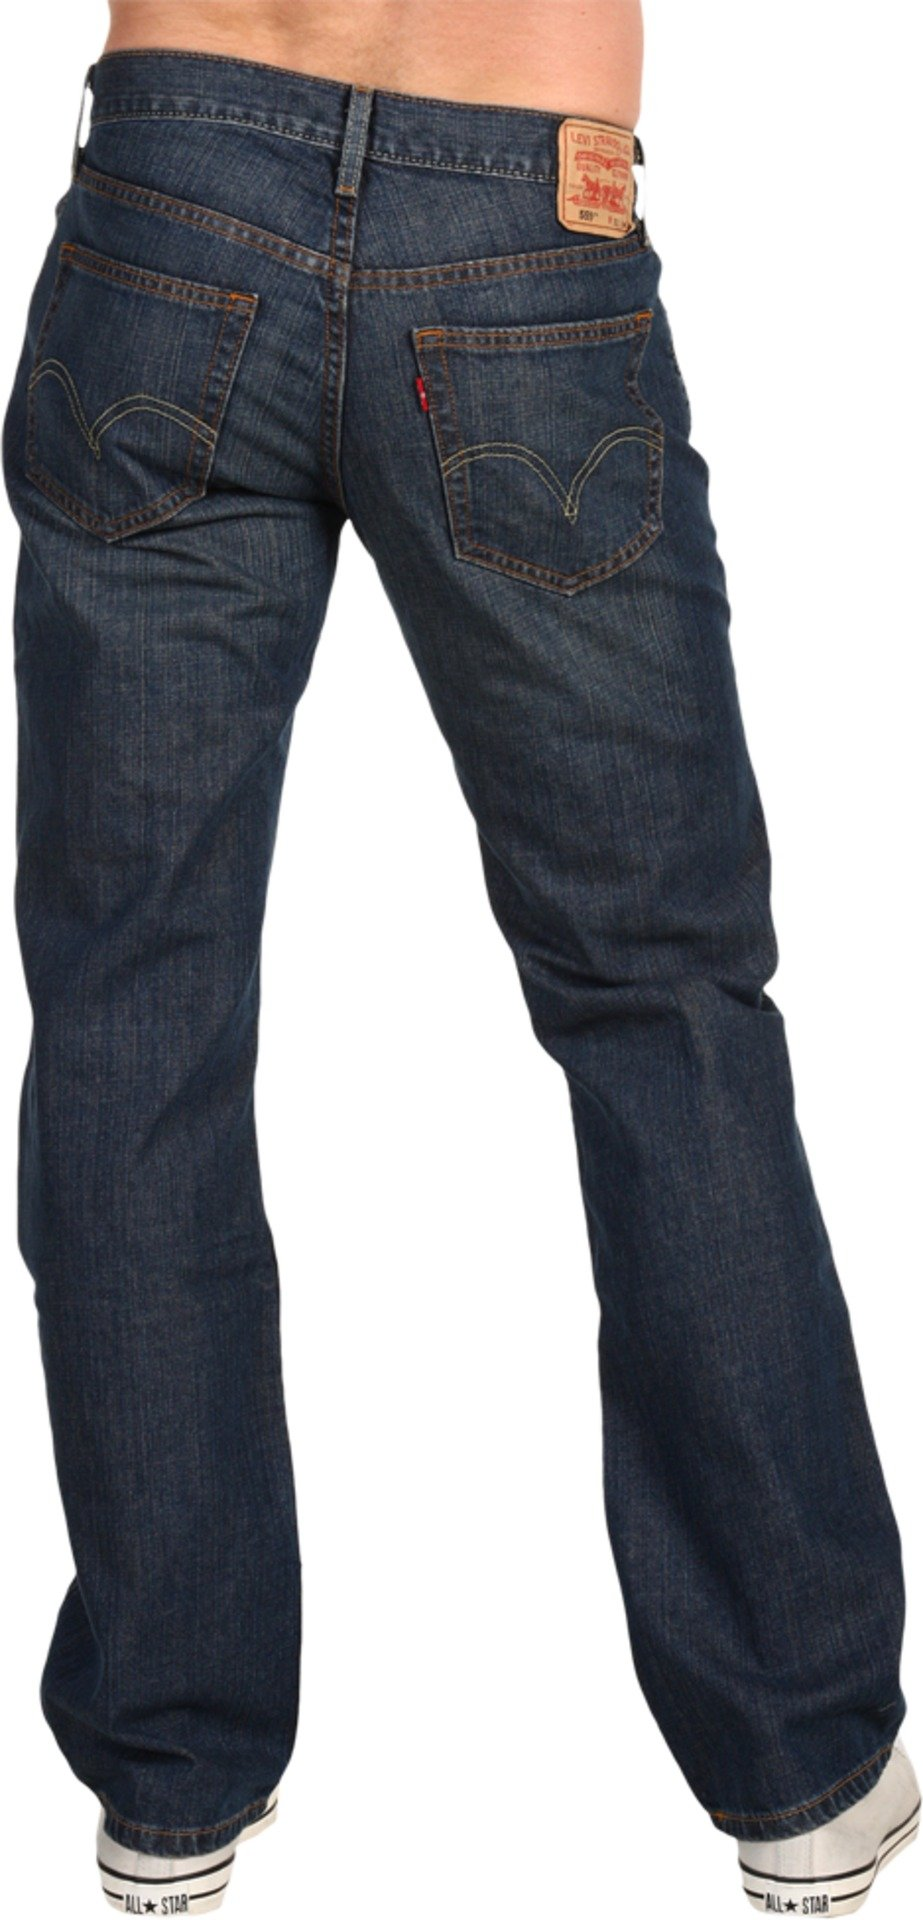 Levi's Men's 559 Relaxed Straight Fit Jean - 33W x 34L - Range